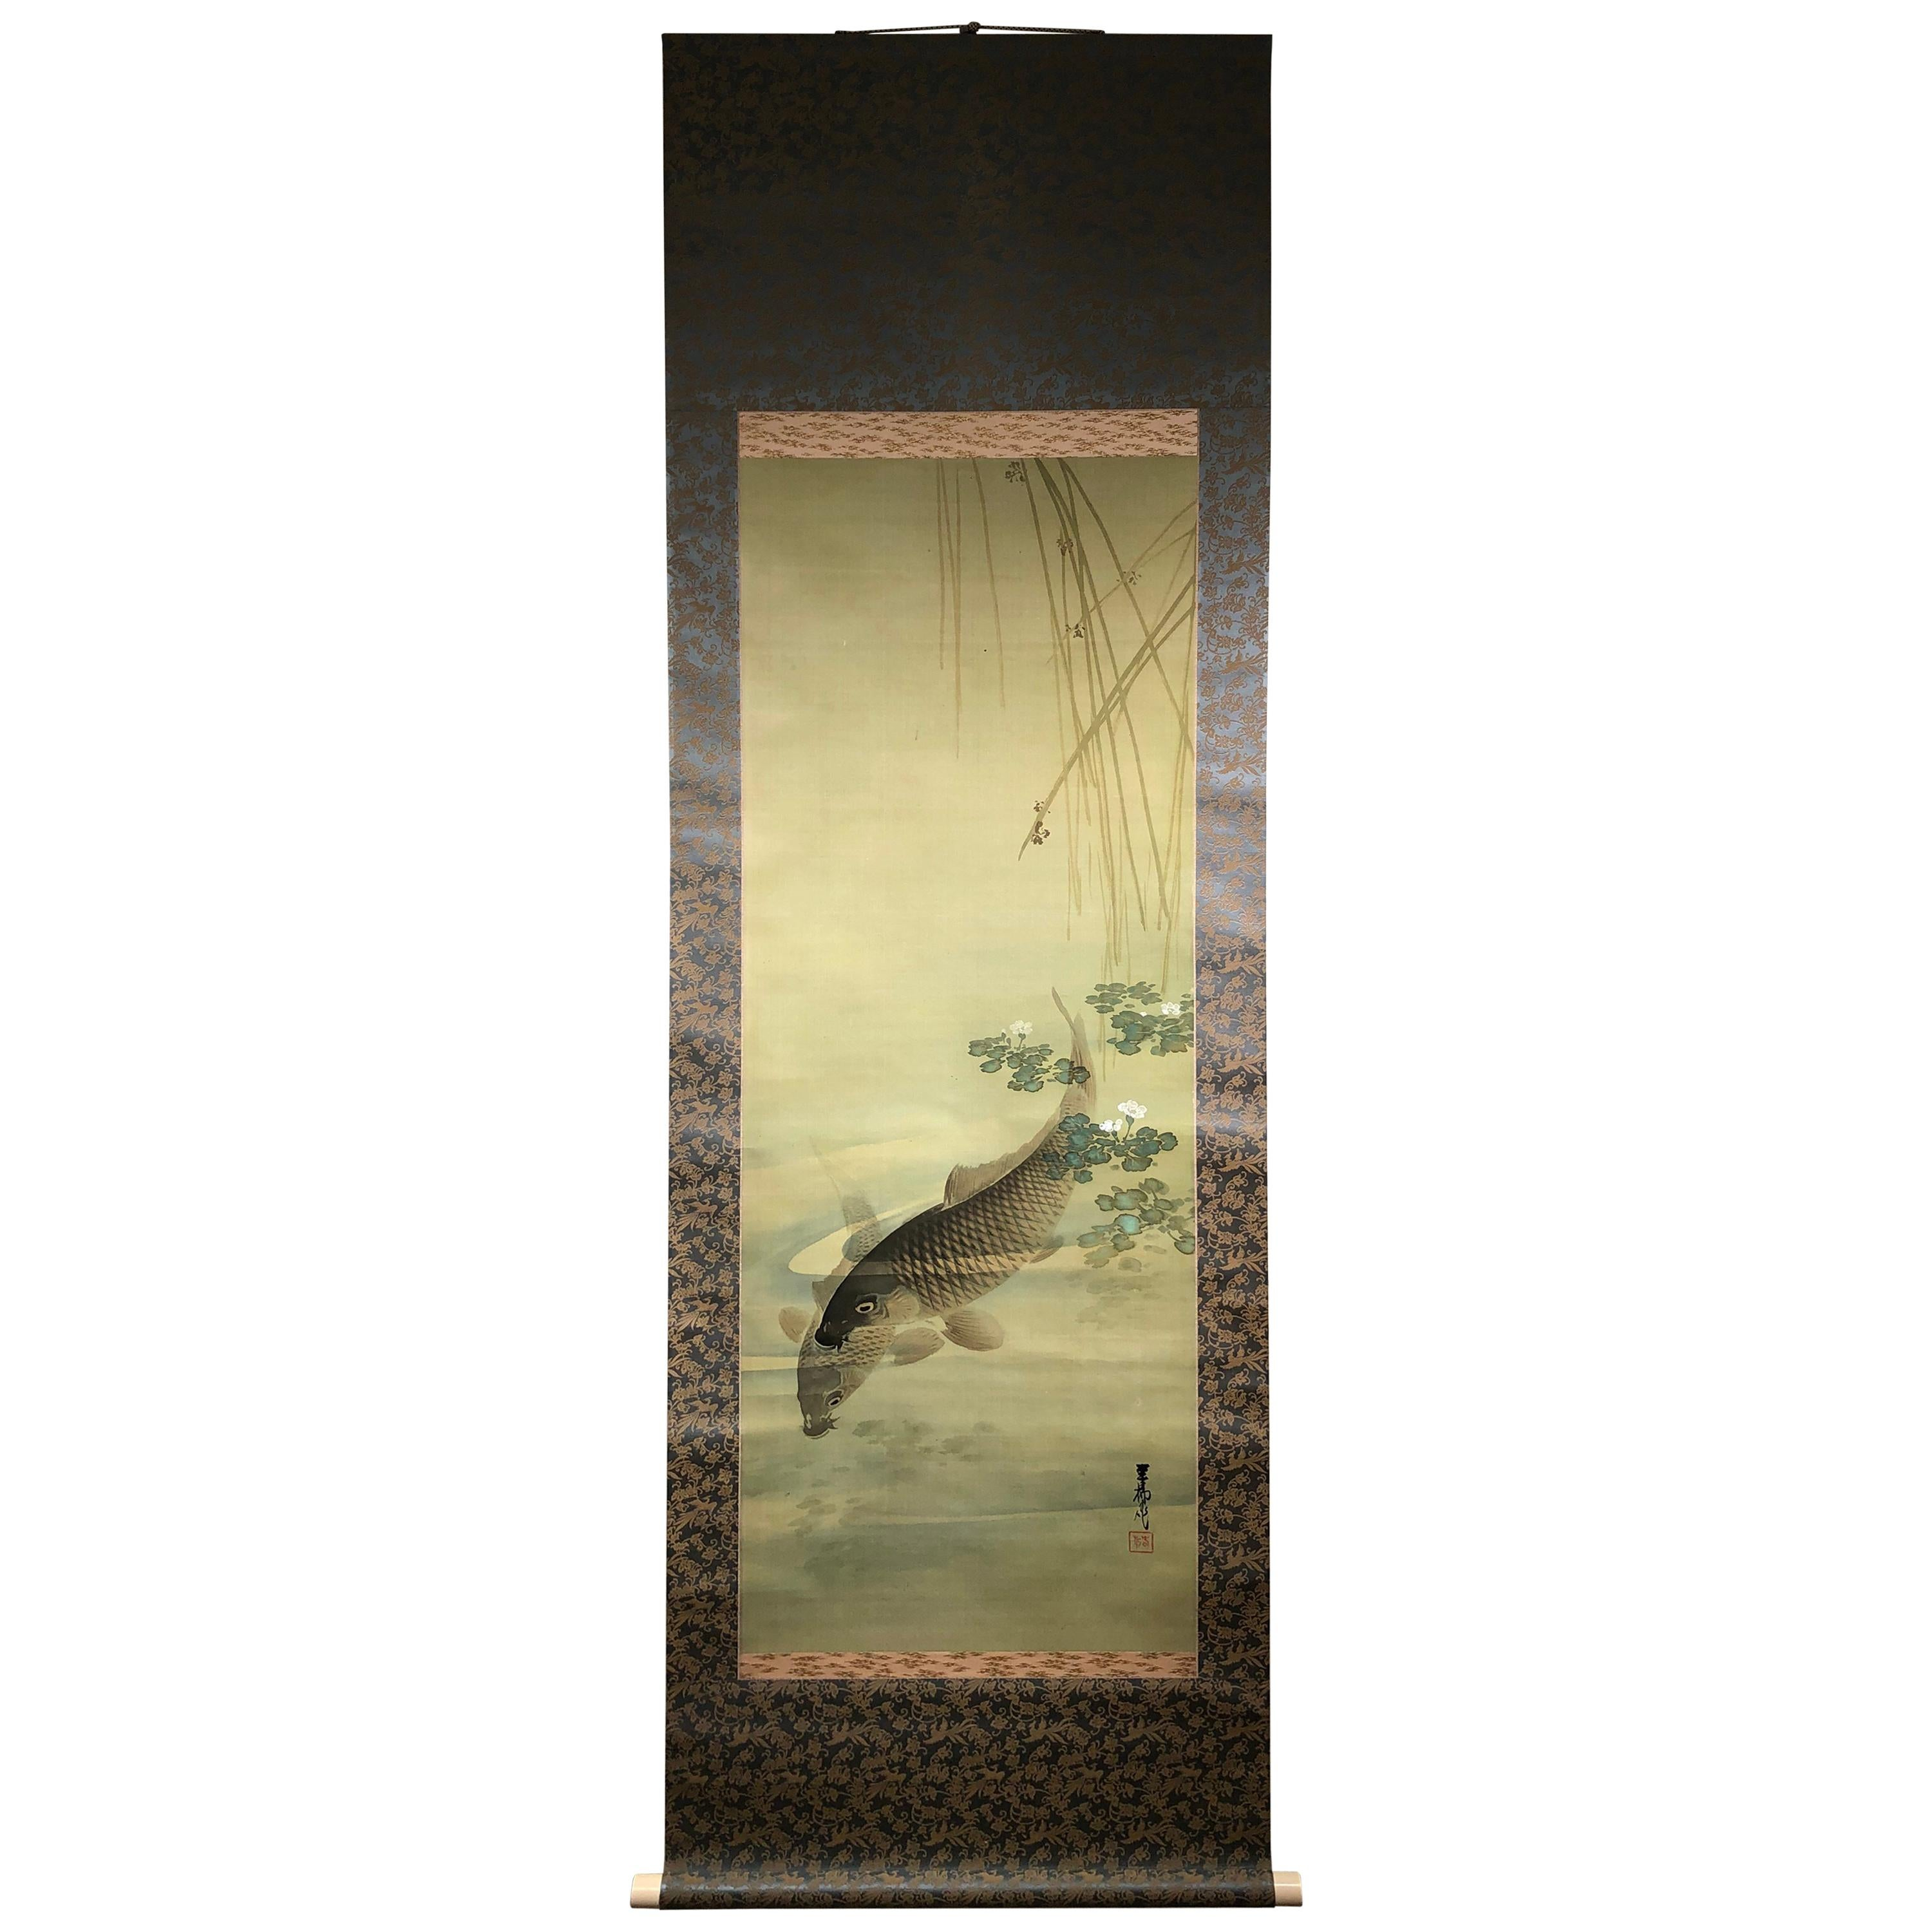 561a1ab0e Japanese Silk Paintings - 213 For Sale on 1stdibs